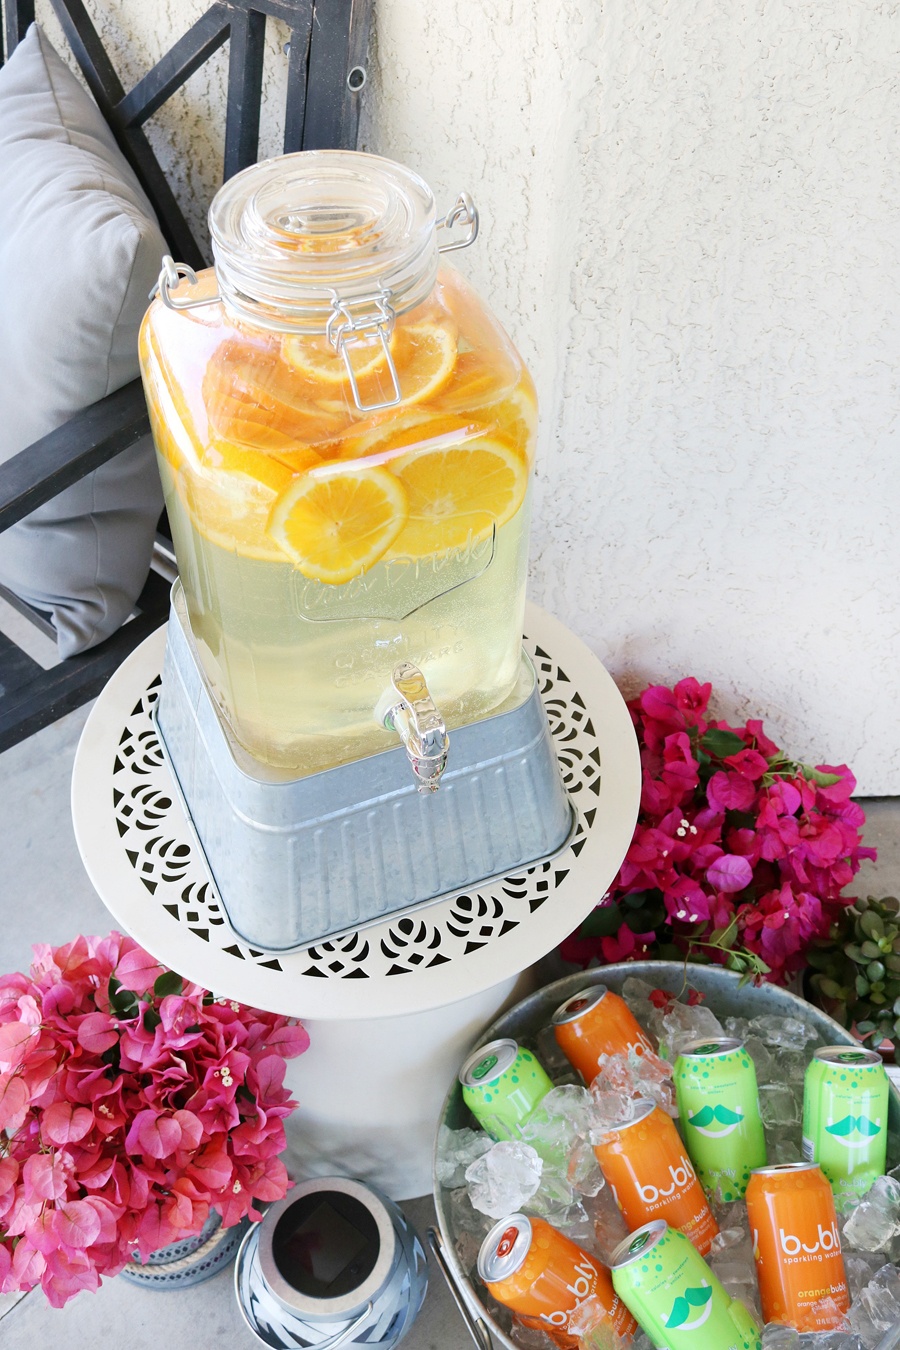 BHG Live Better drink dispensers make great decor and easy beverages for your guests when entertaining outdoors.